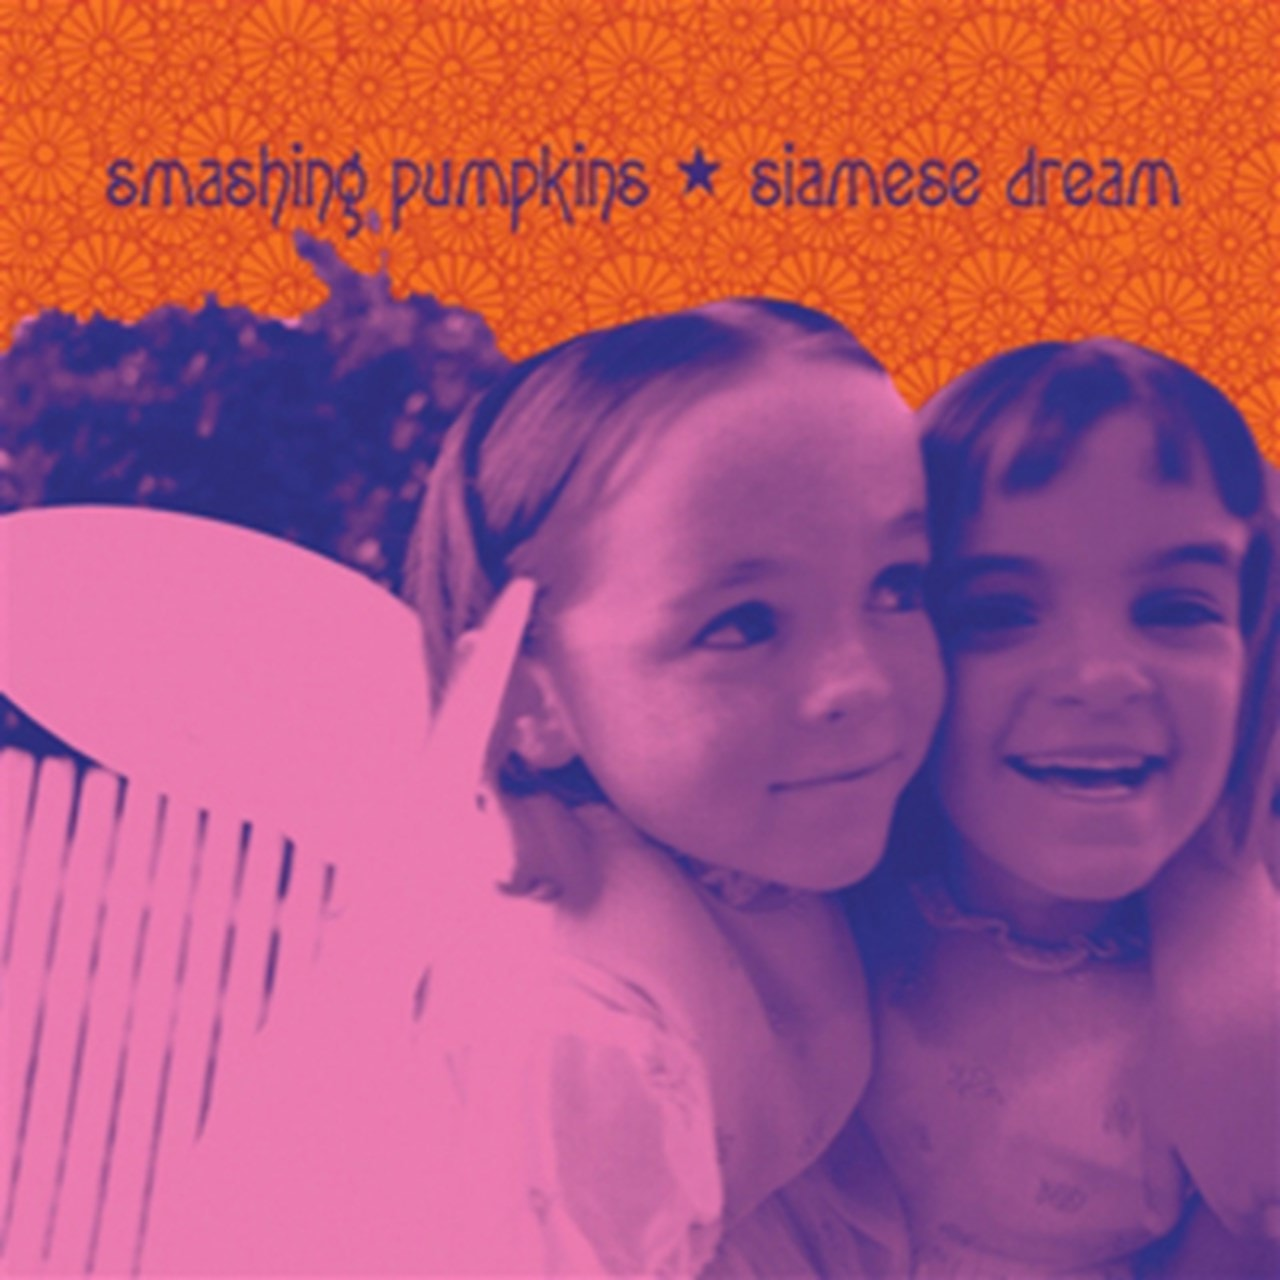 Siamese Dream - 1